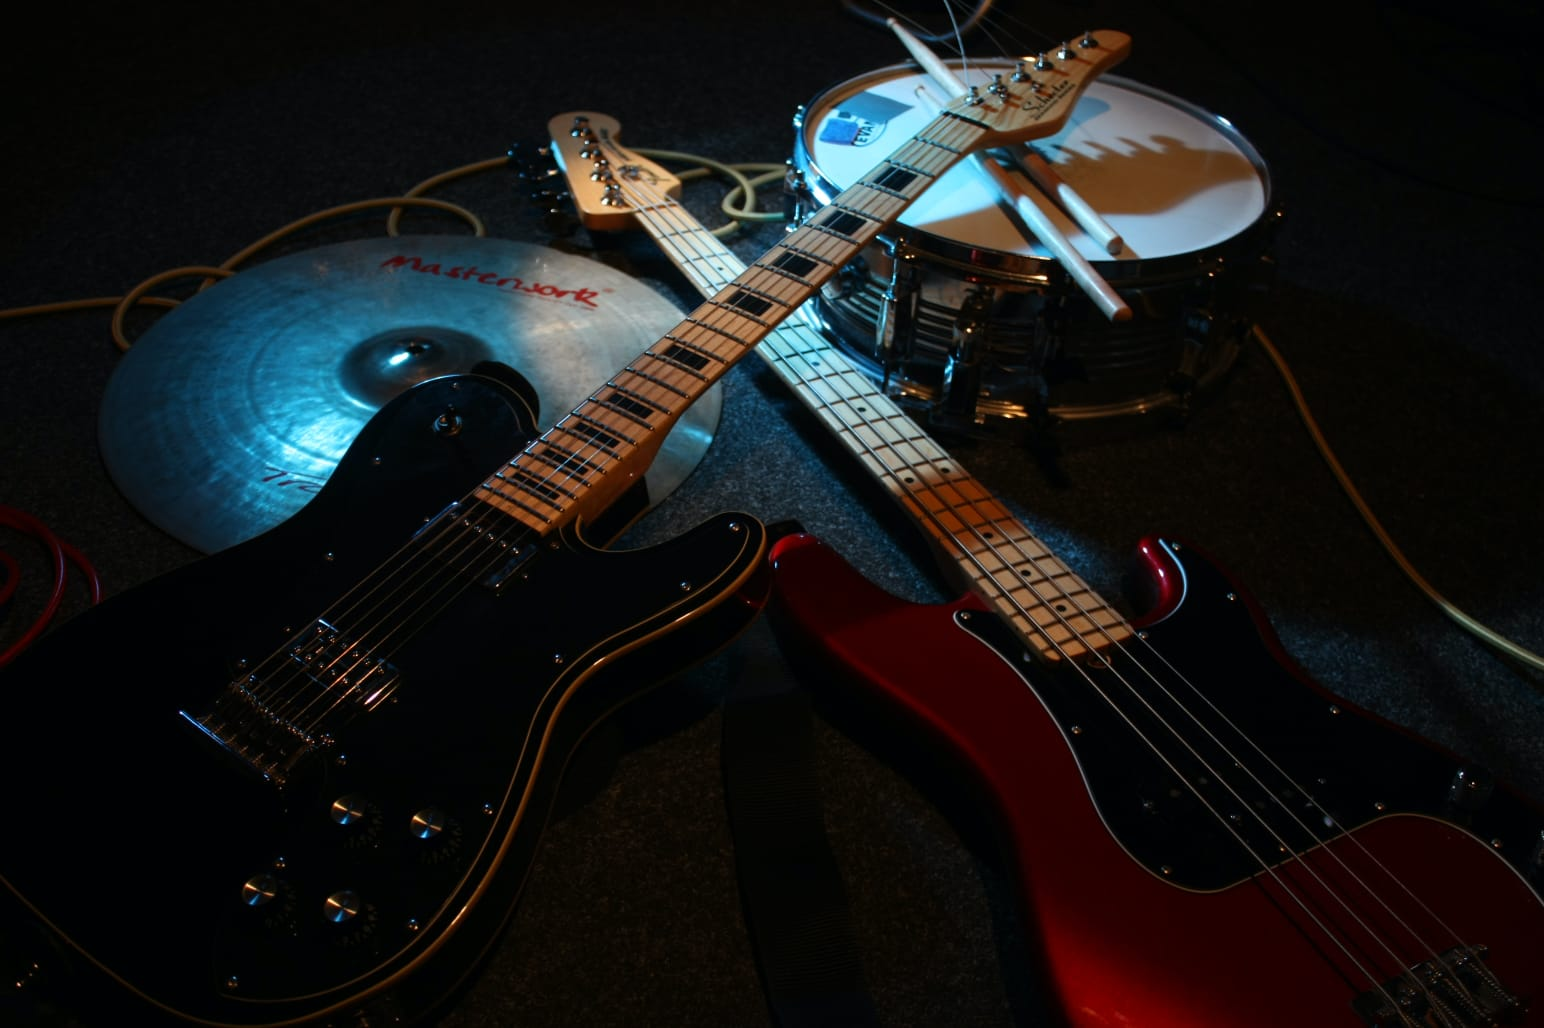 Separated Minds instruments guitar bass drums sticks cables cymbal lying on the ground full size for background optimized for web